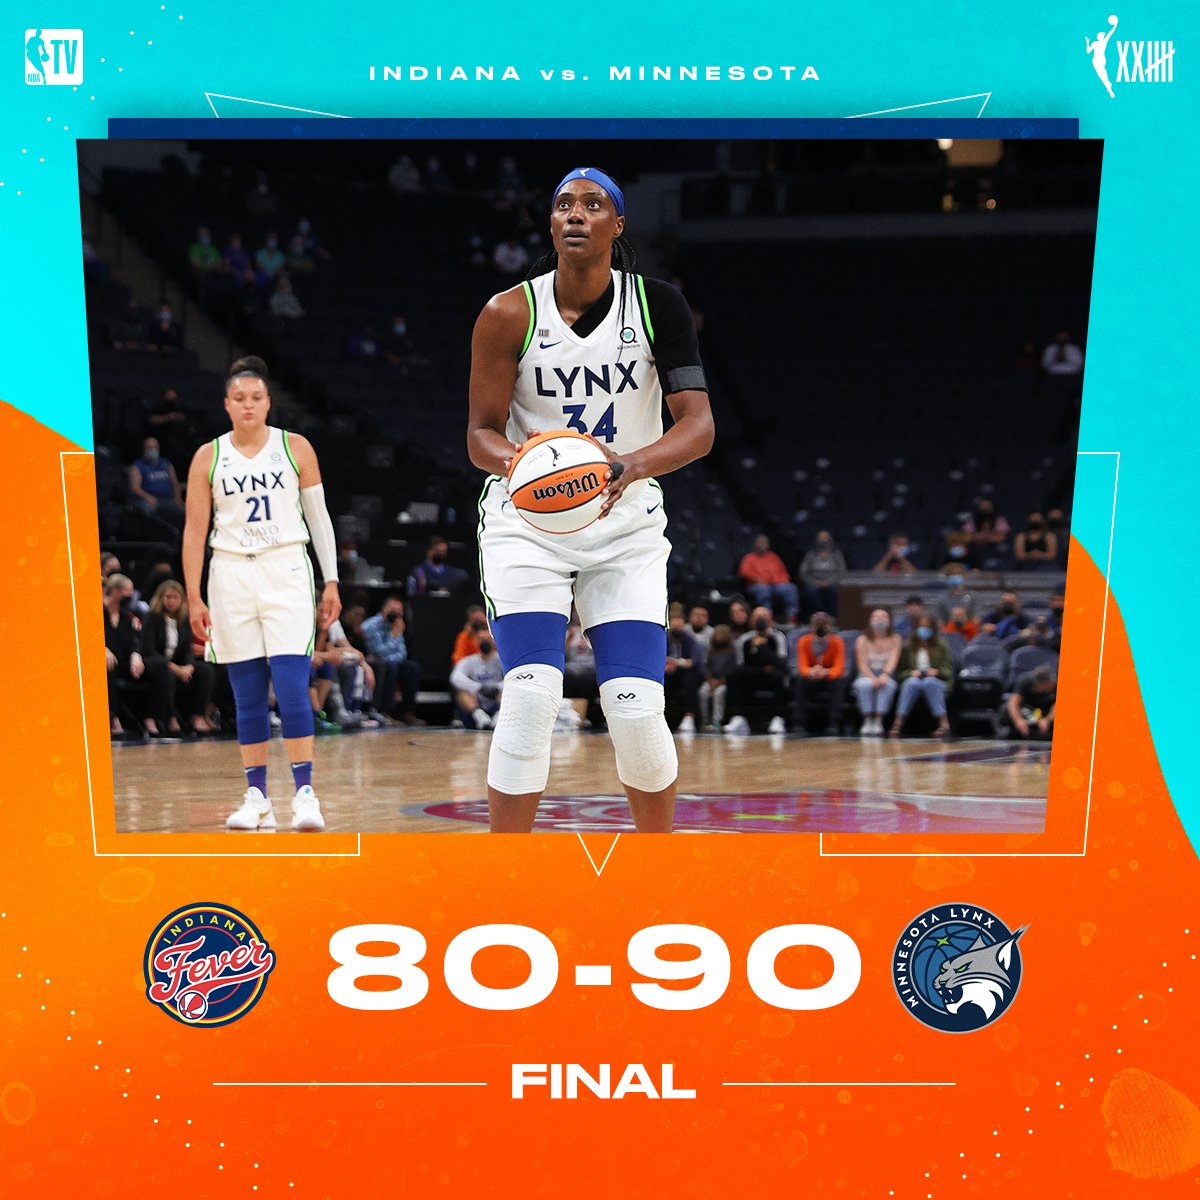 The @minnesotalynx take control in the second half for the W 💪